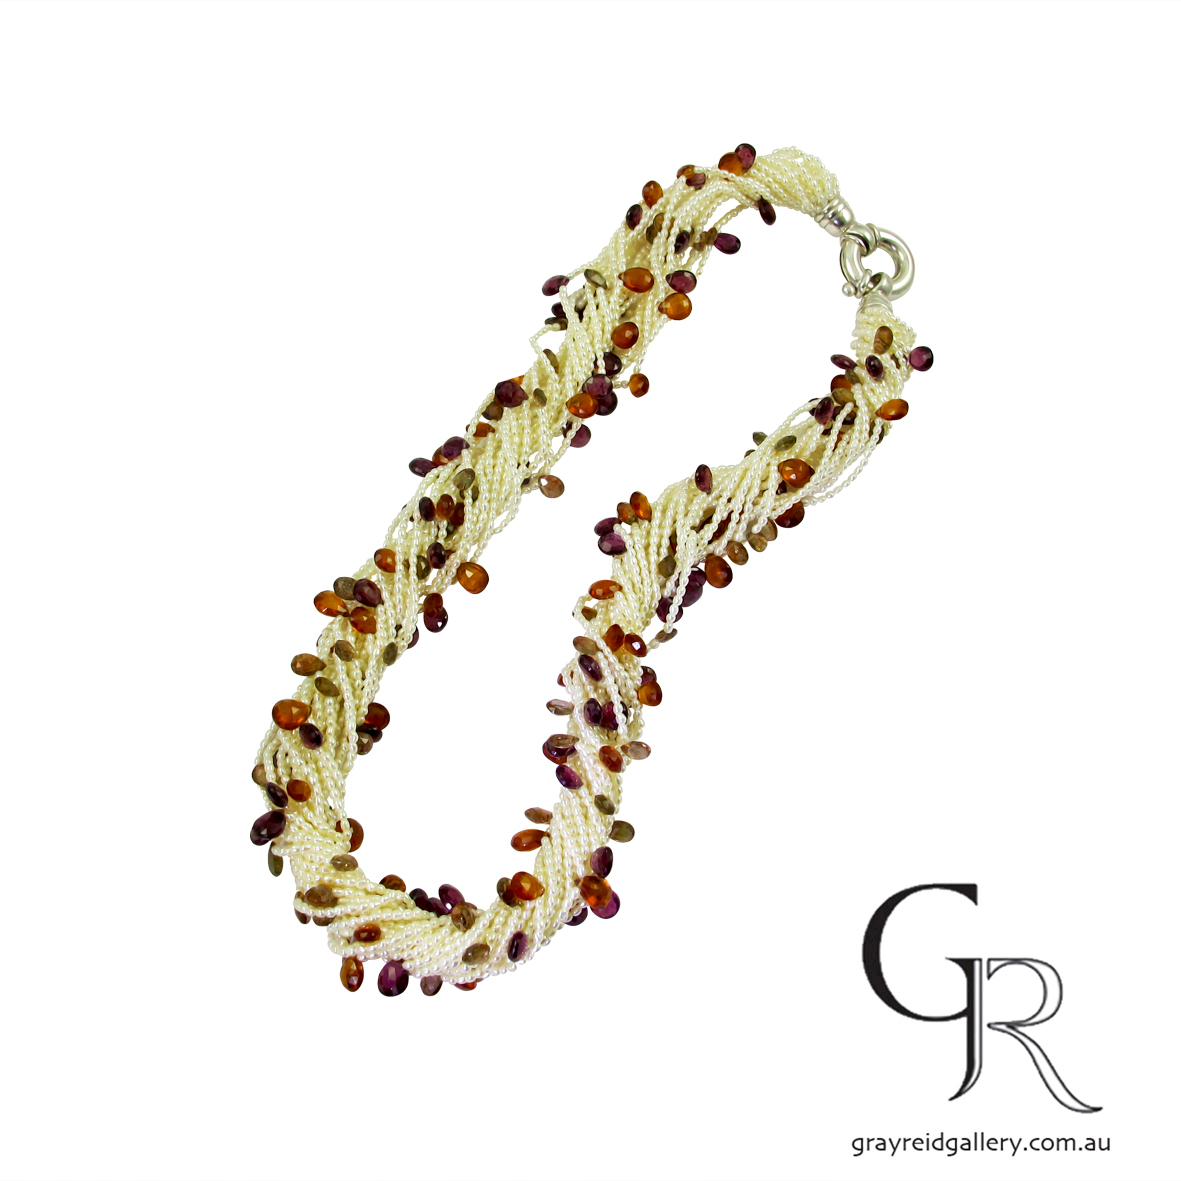 pearl and gemstone beads necklace Gray Reid Gallery Melbounre 21.jpg